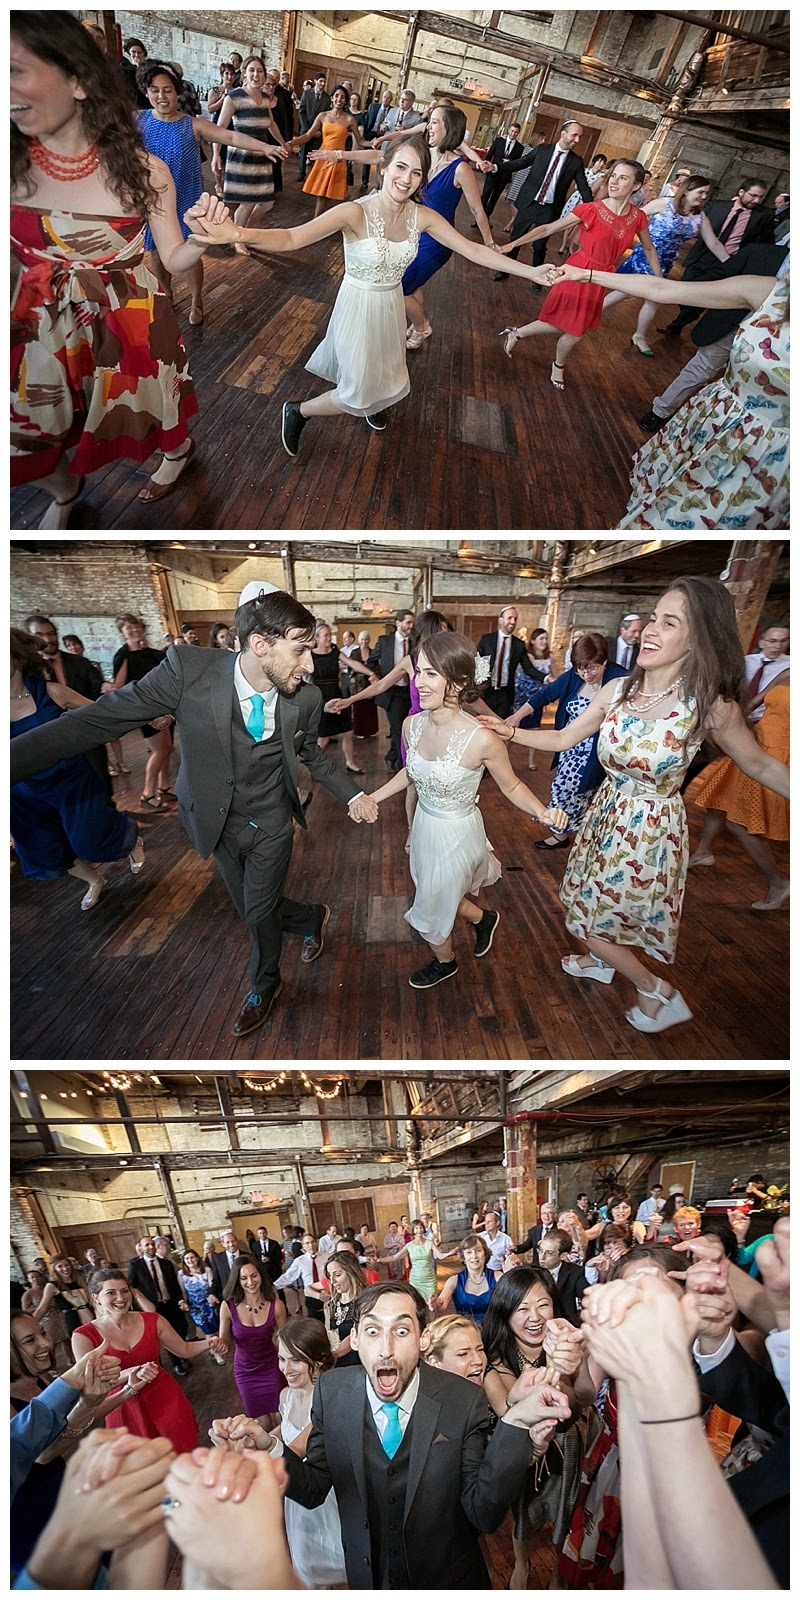 http://stylishhipweddings.com/blog/anna-and-nats-wedding-at-greenpoint-loft/